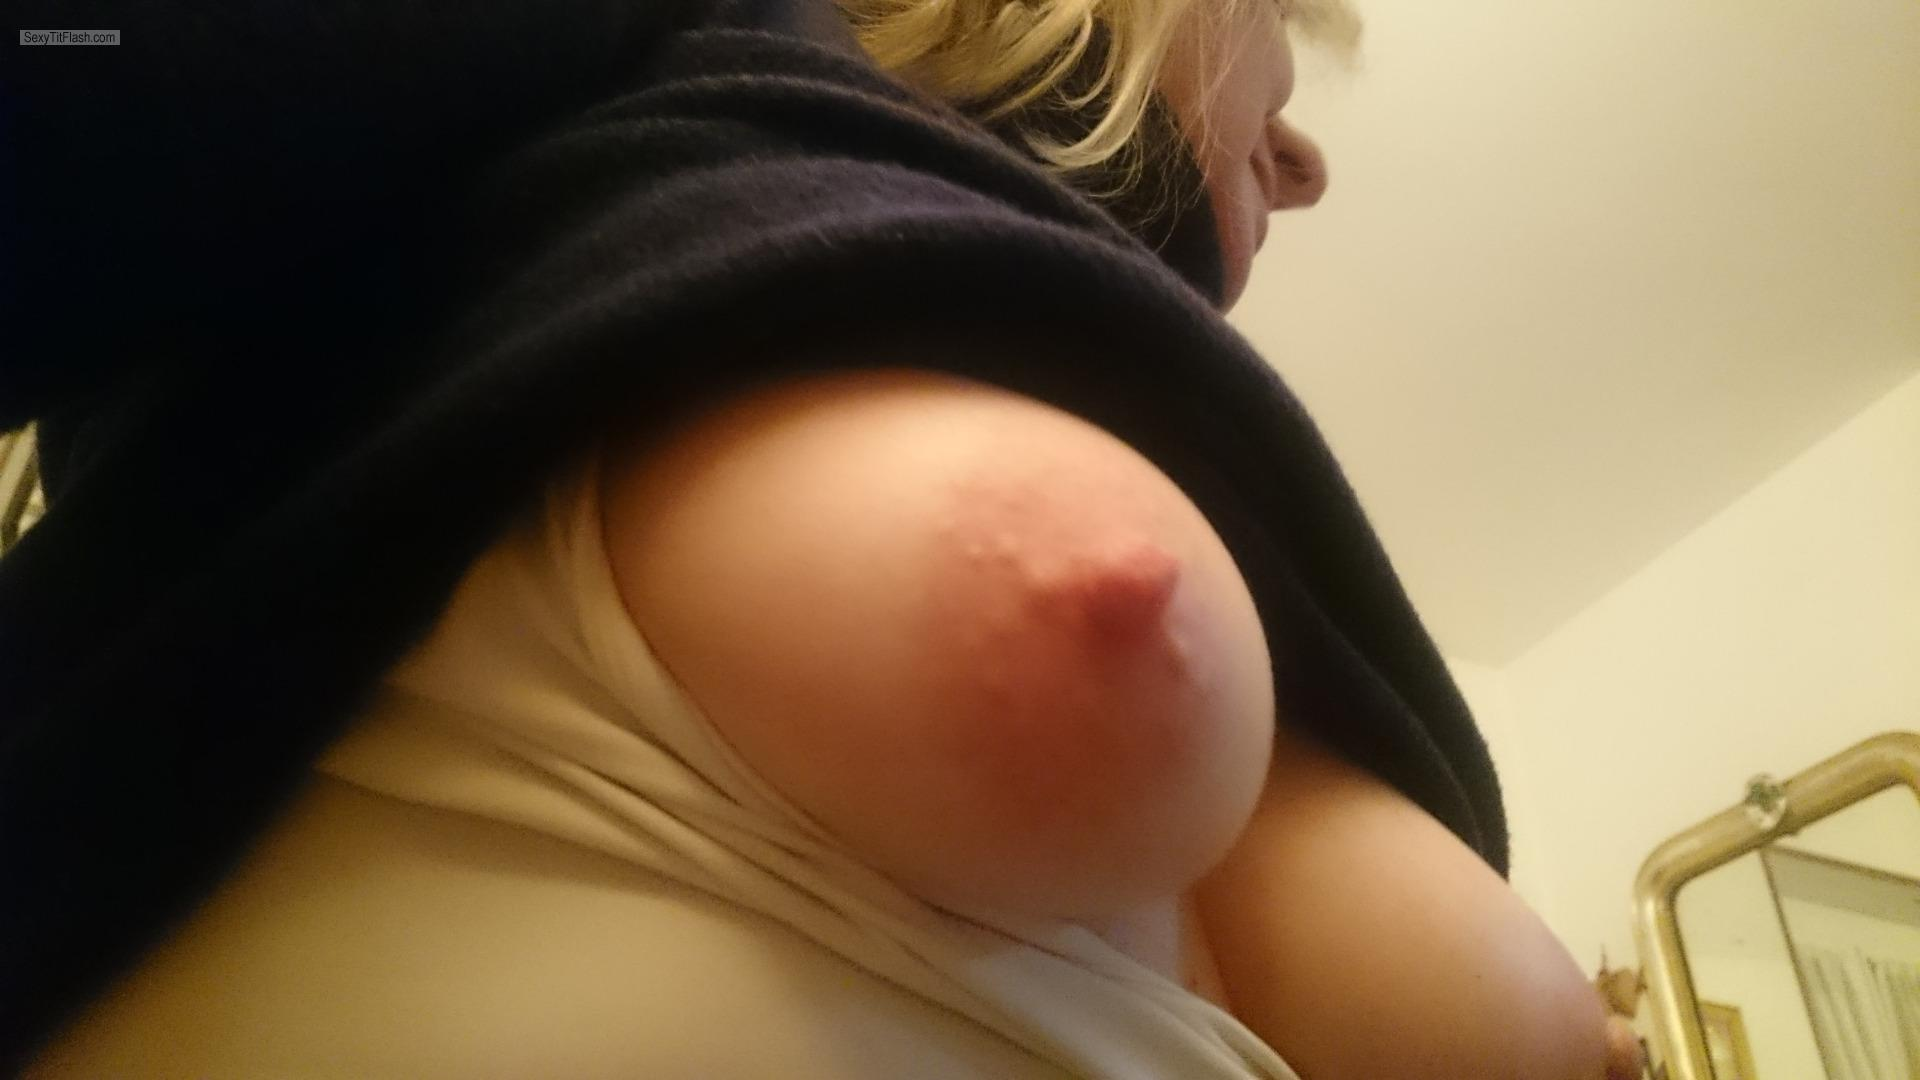 Tit Flash: My Medium Tits - Elisa from Italy